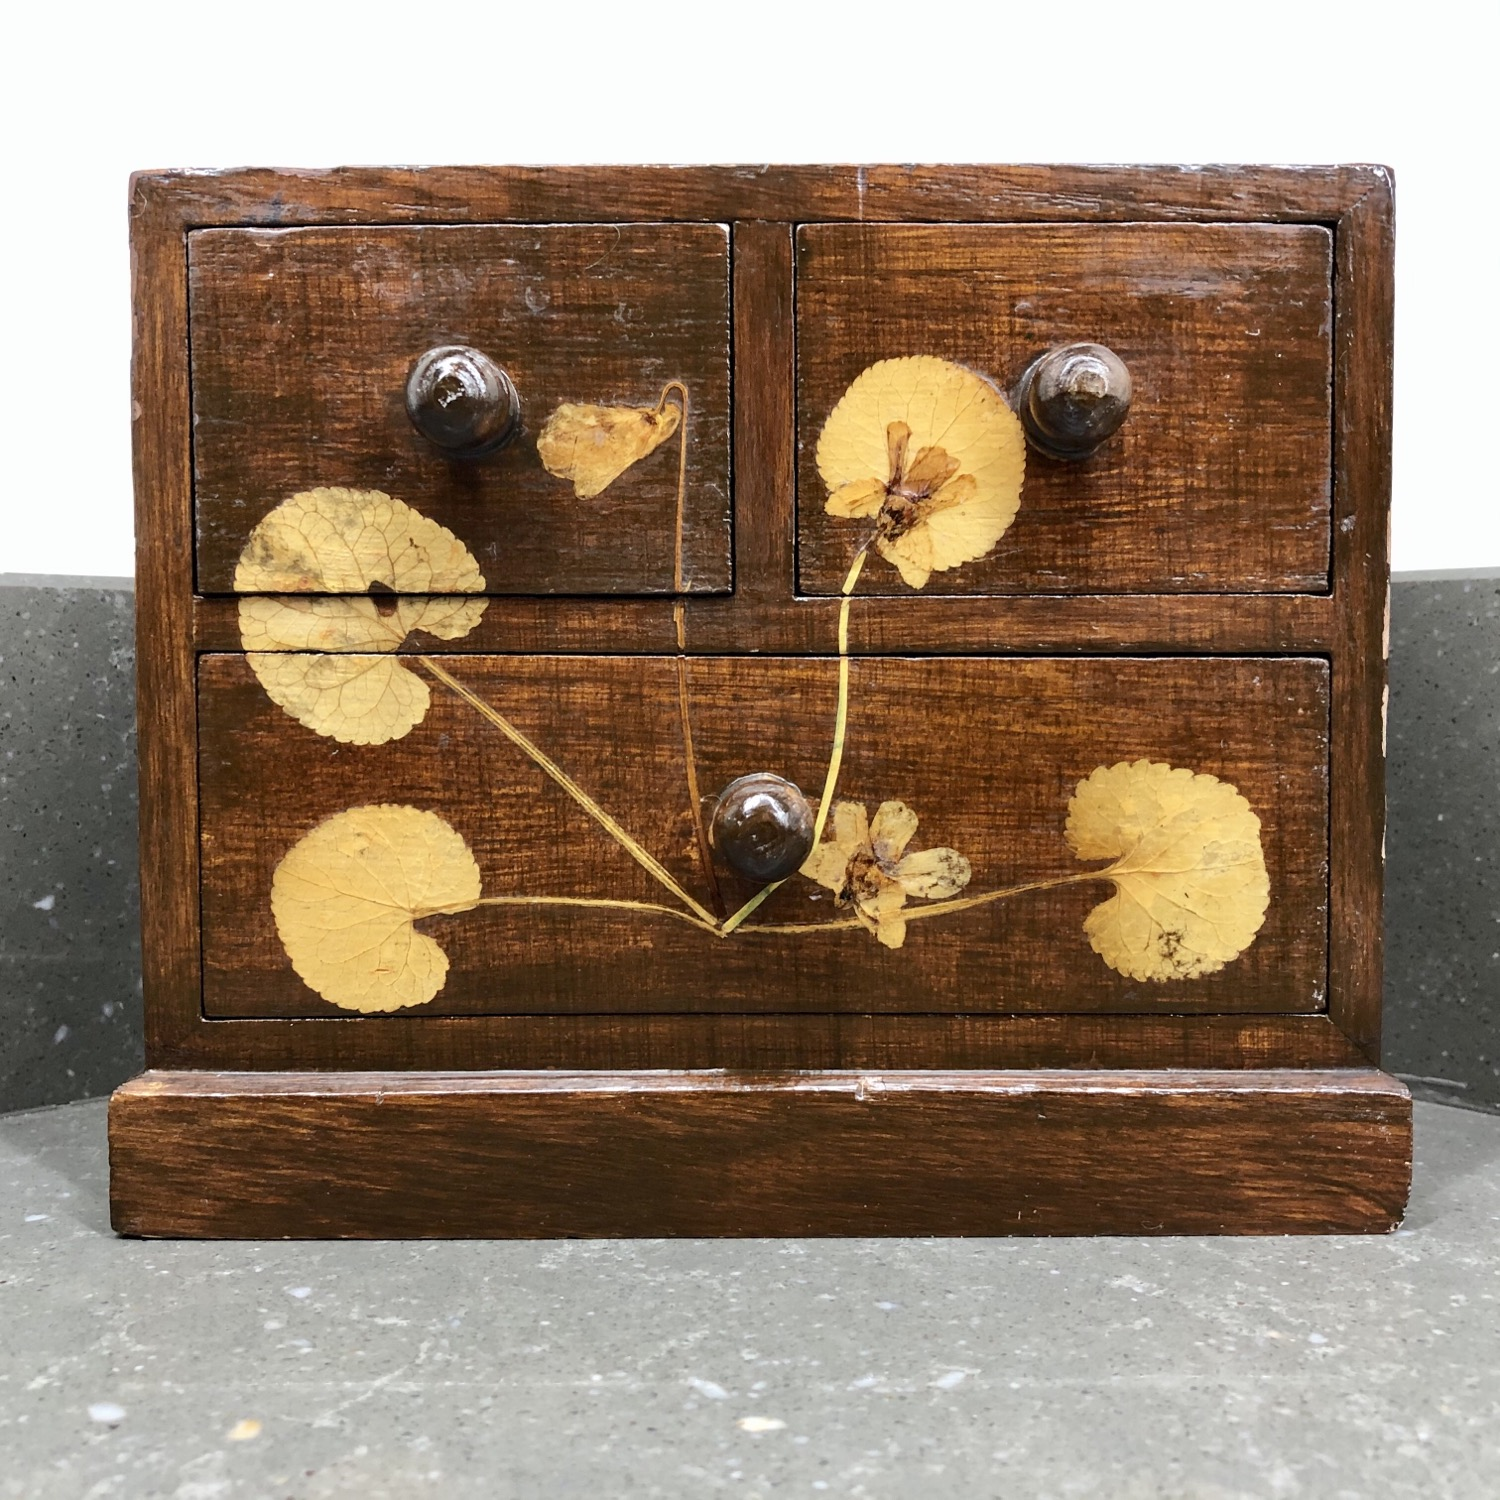 VINTAGE MINIATURE WOODEN CHEST WITH PRESSED FLOWERS